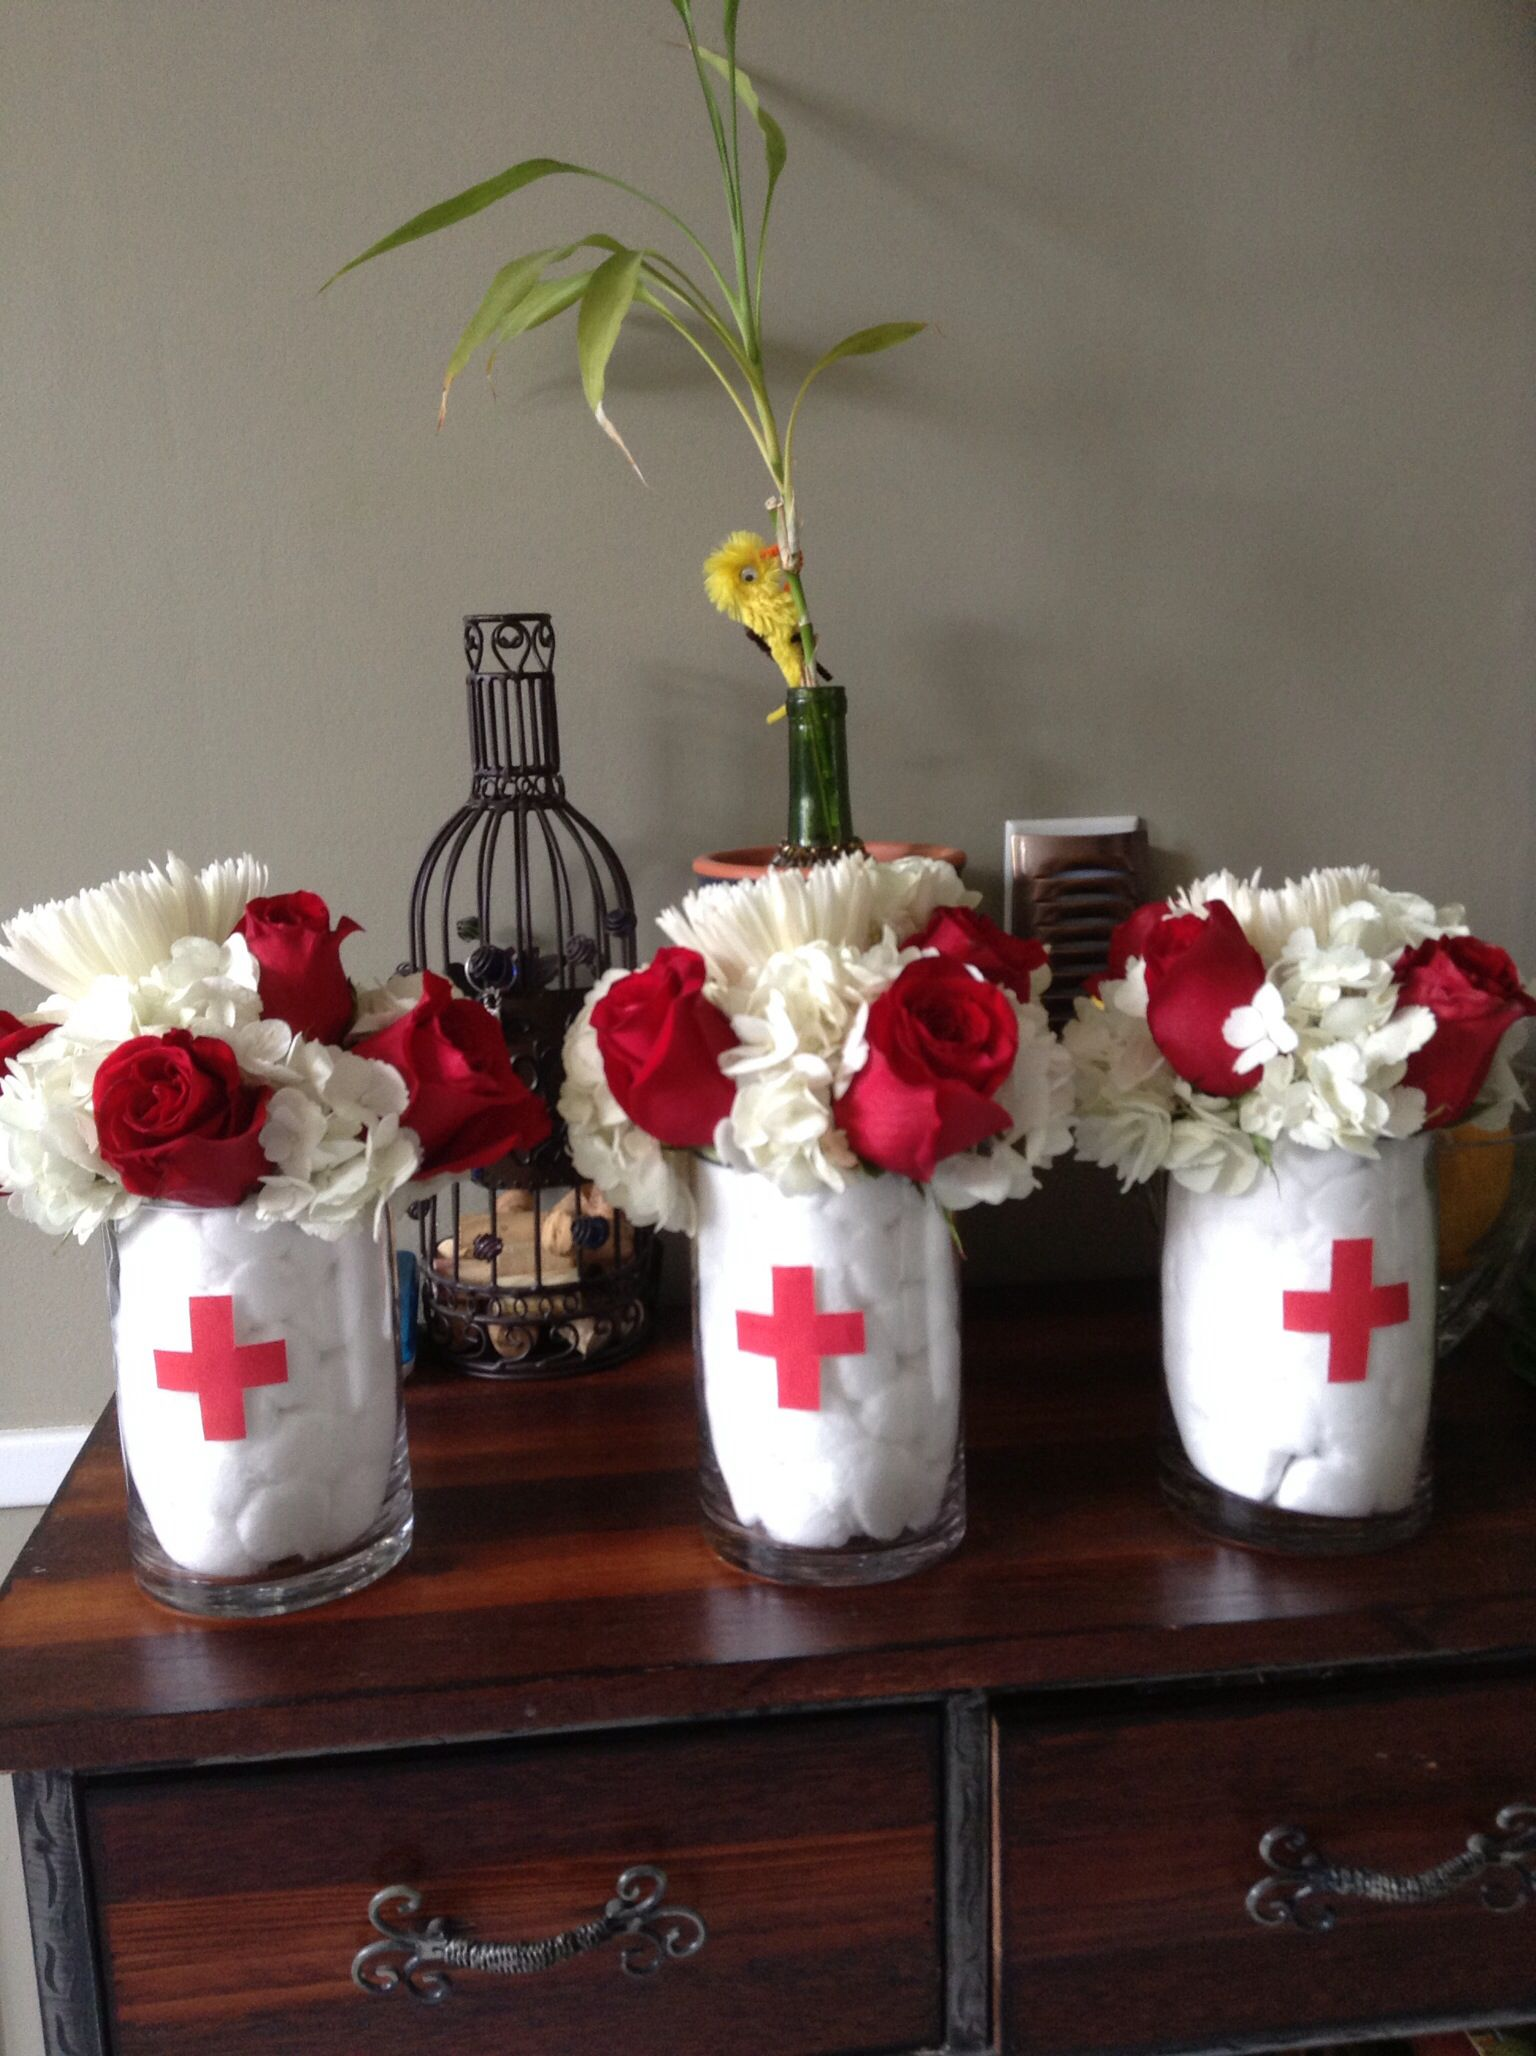 nurse theme centerpieces by connie my creations  mason jar centerpieces for graduation party